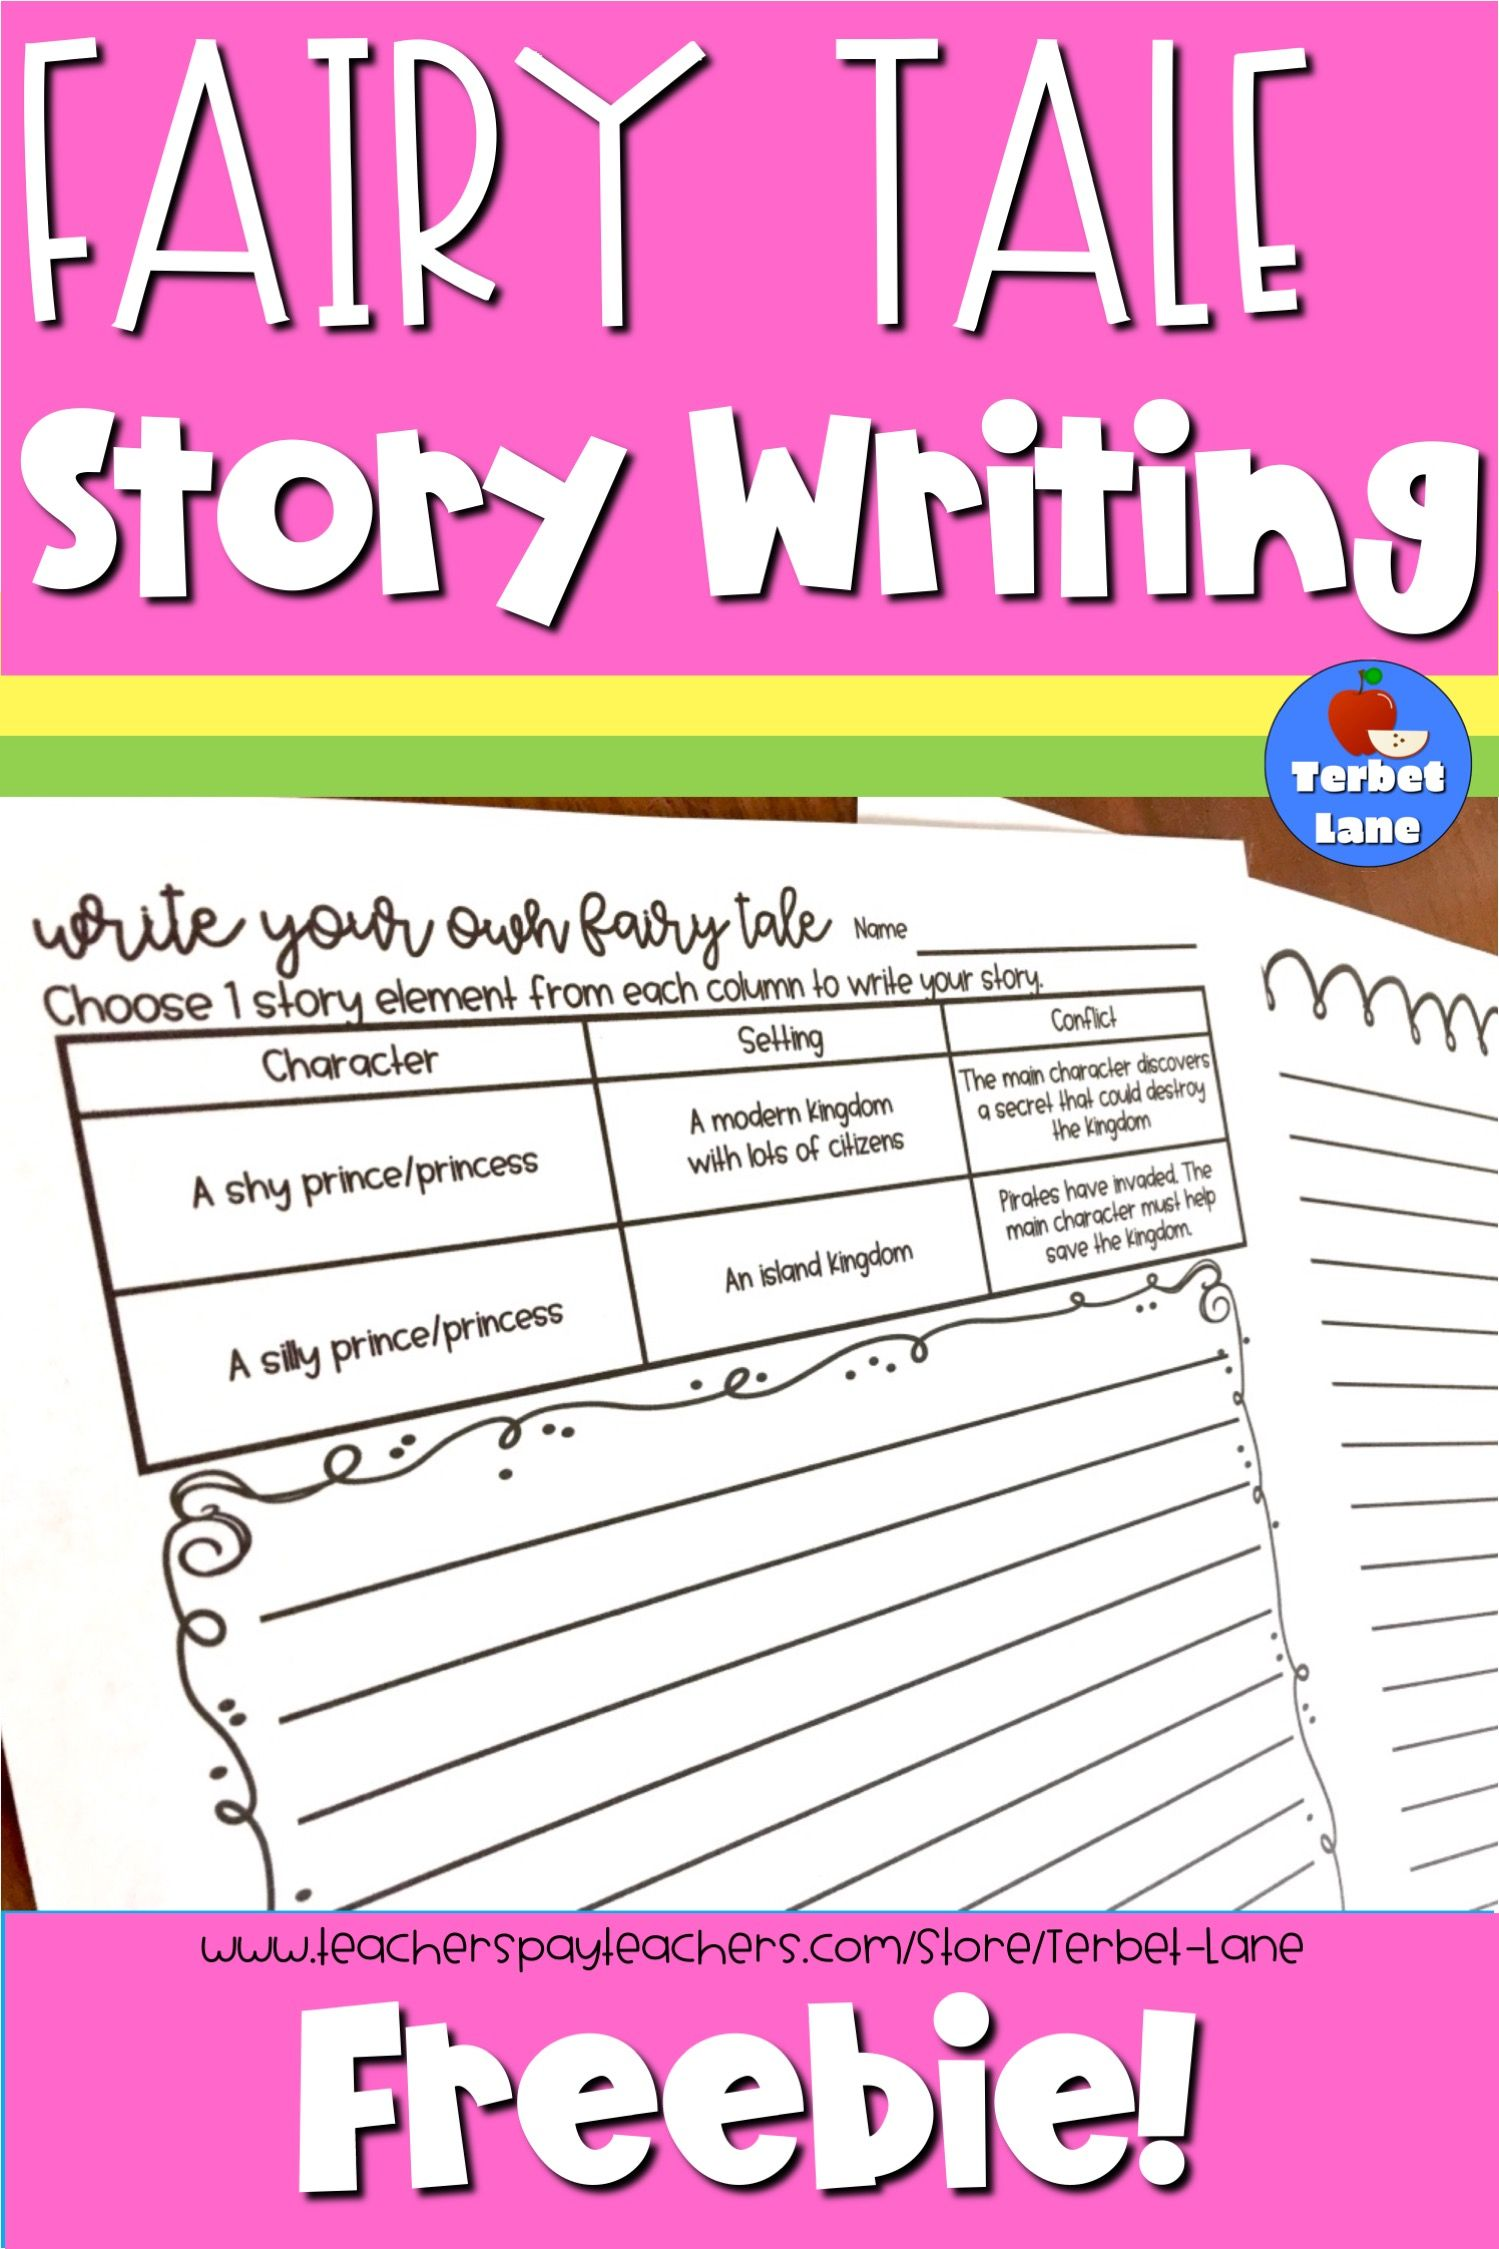 Free Fairy Tale Story Writing Worksheets